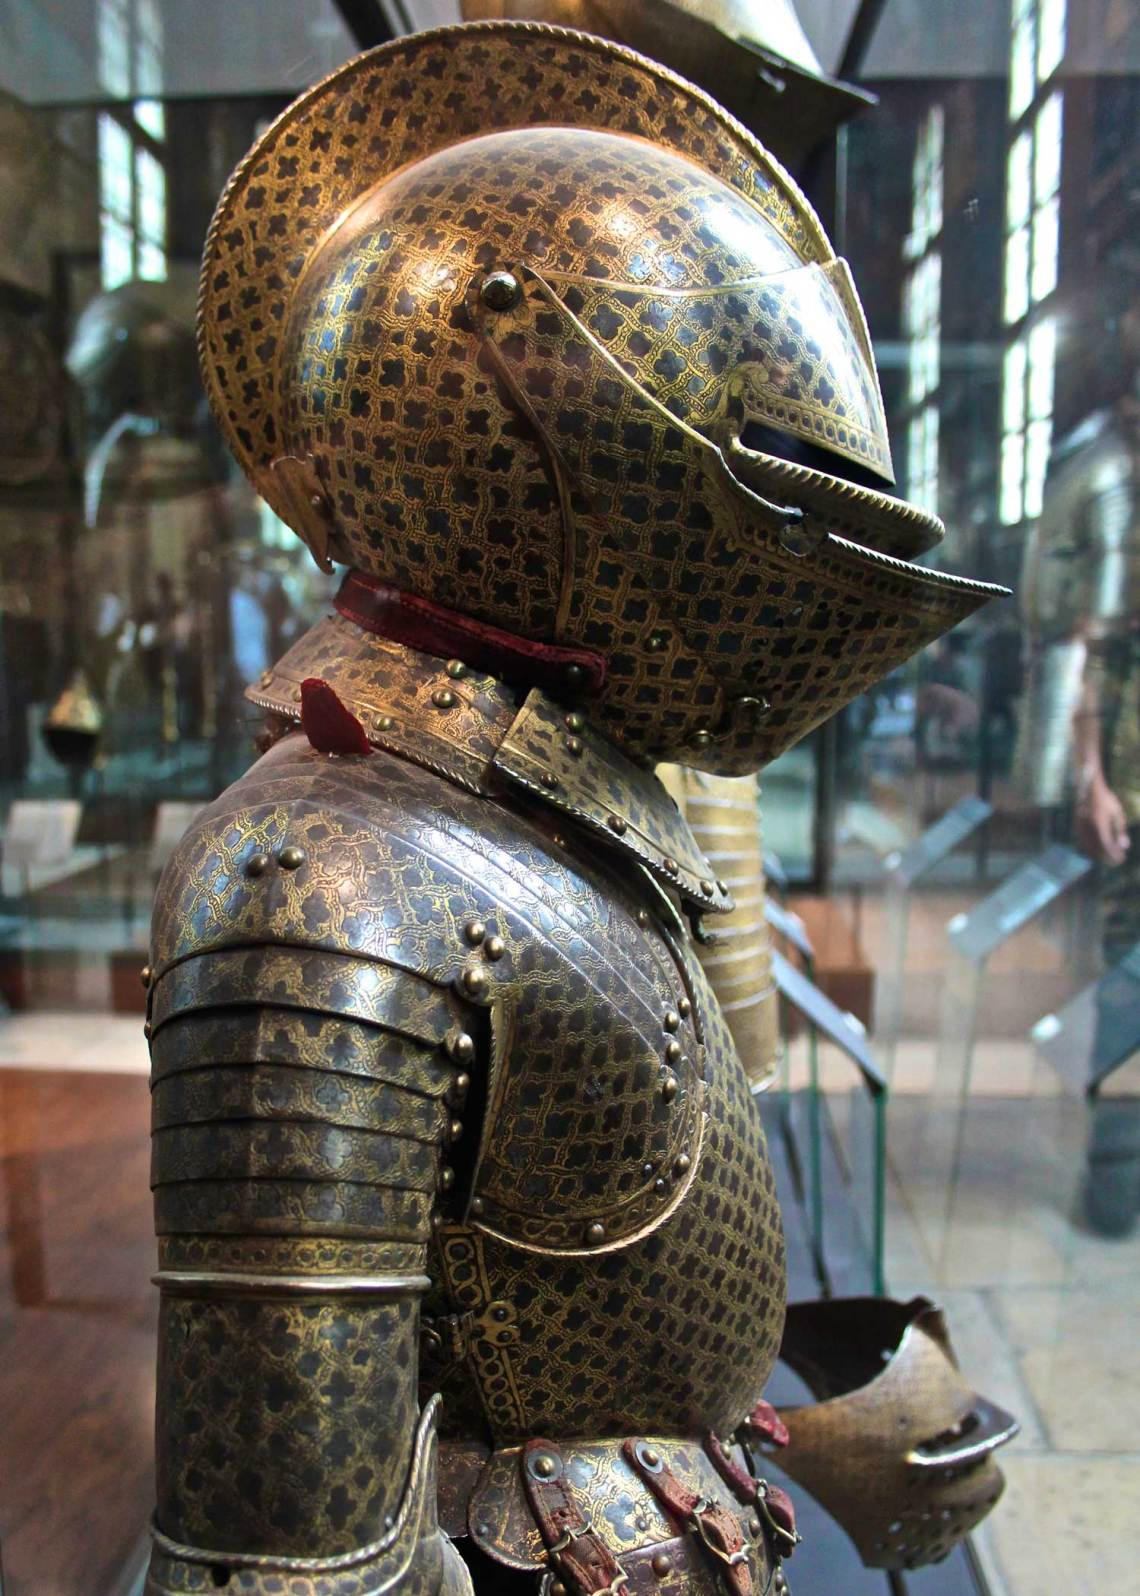 Musee des Invalides, Knight, Paris, France, King, Suit, Armour